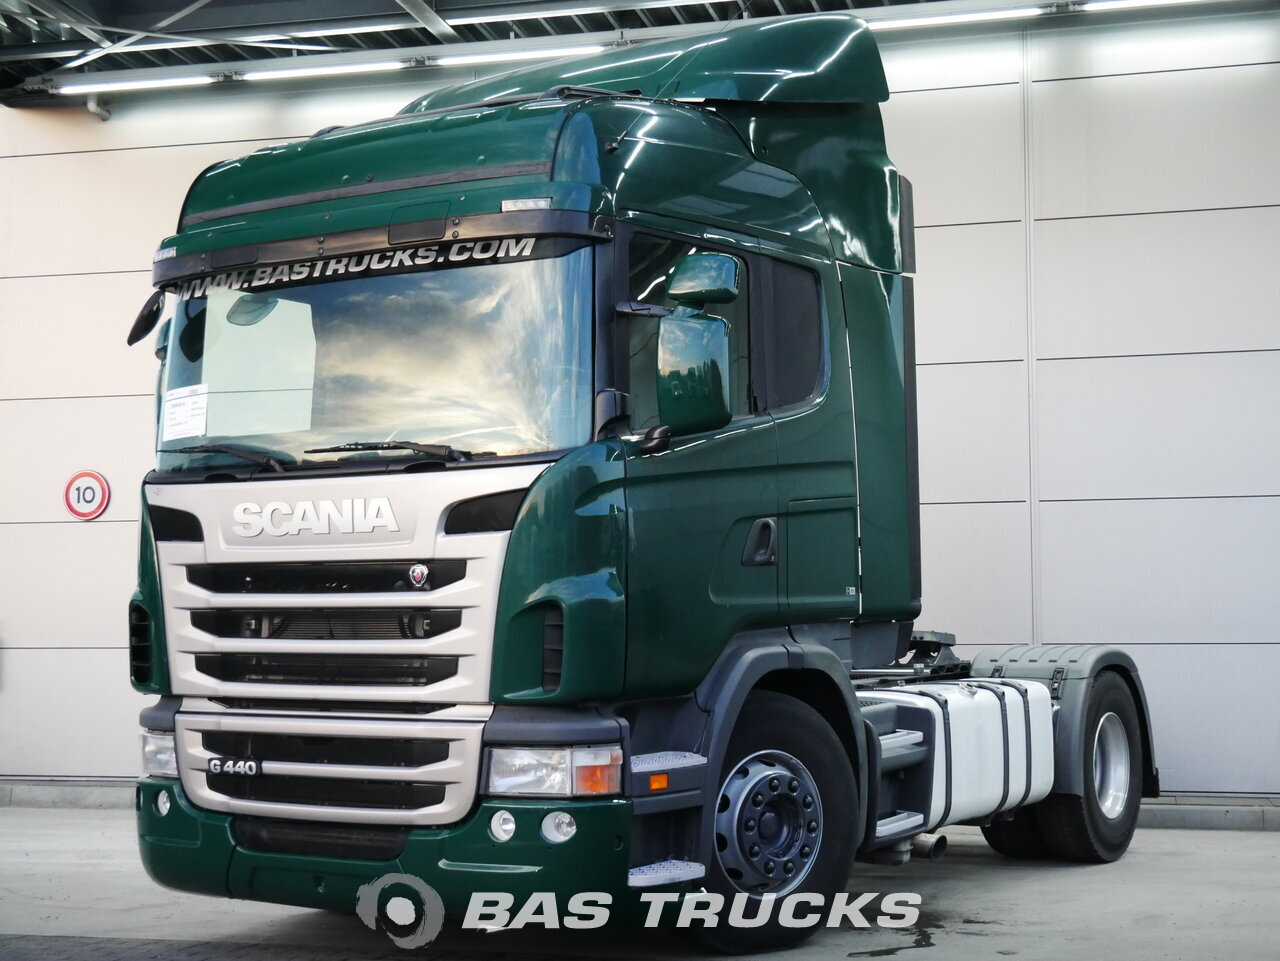 For sale at BAS Trucks: Scania G440 4X2 10/2012